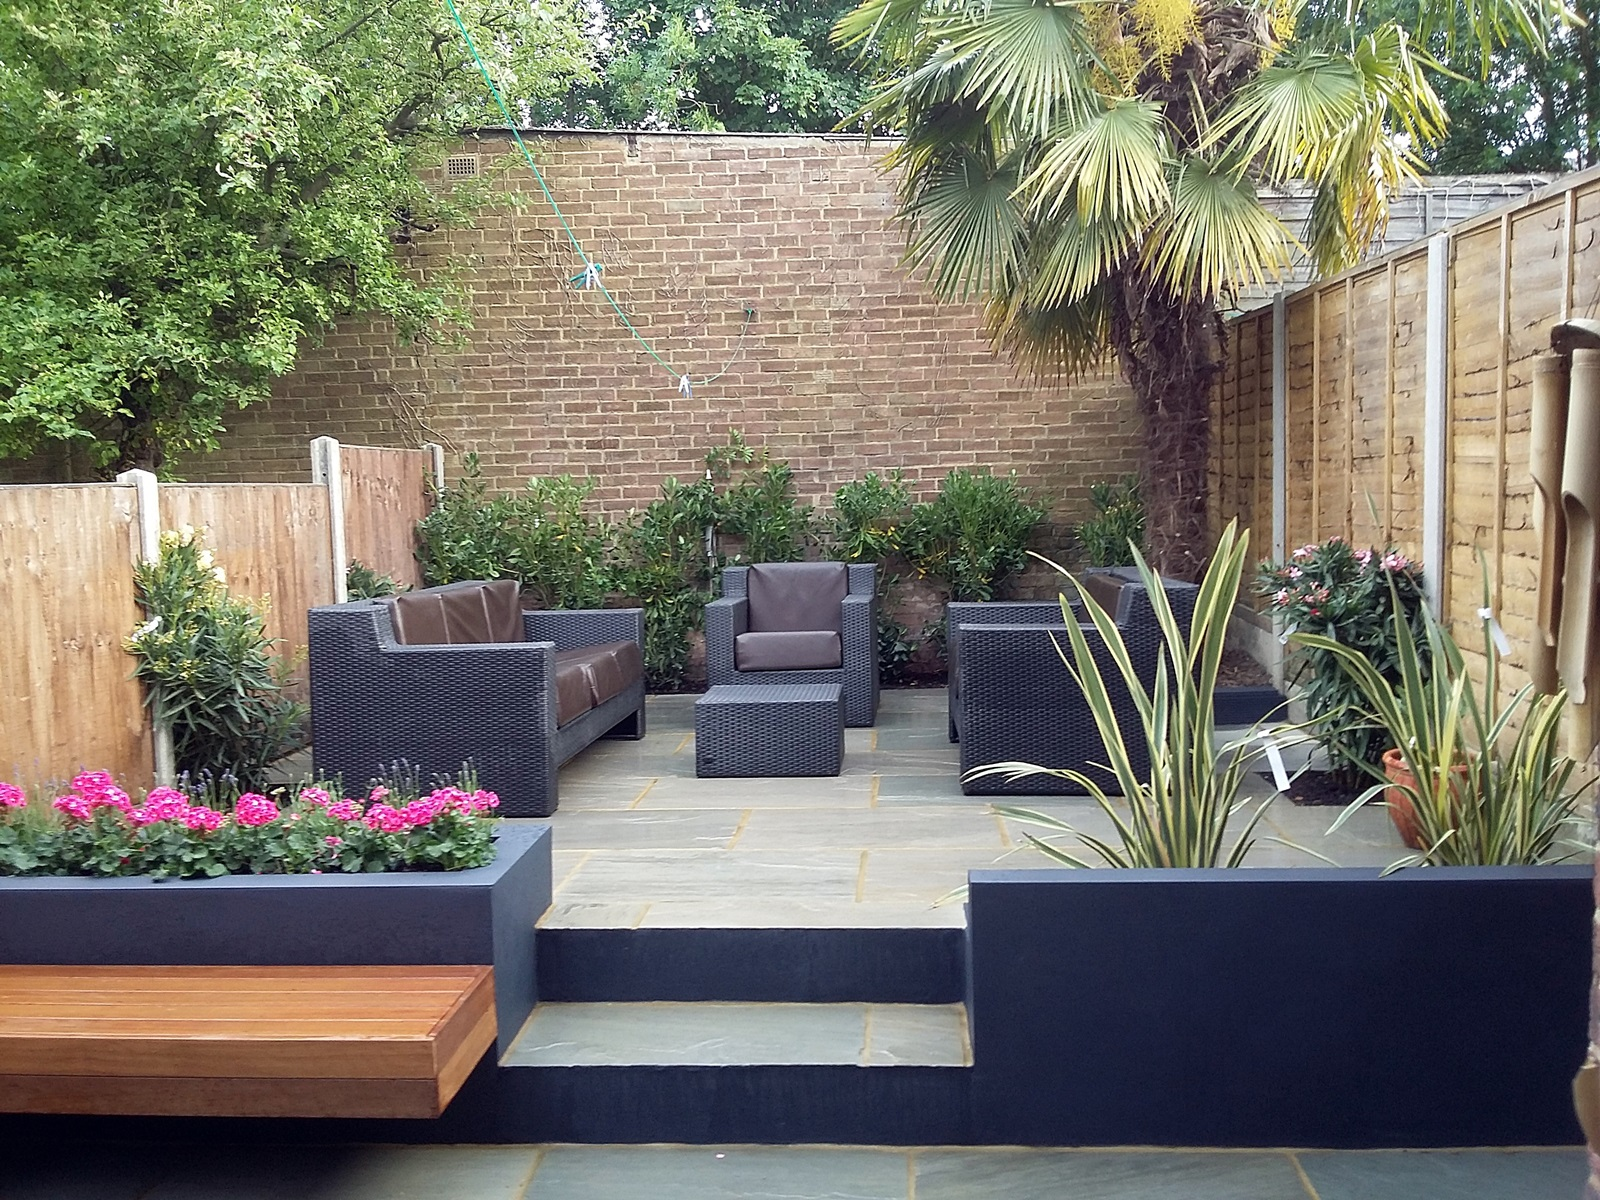 modern low maintenance small london garden paving raised concrete block render walls hardwood bench clapham dulwich balham battersea london design